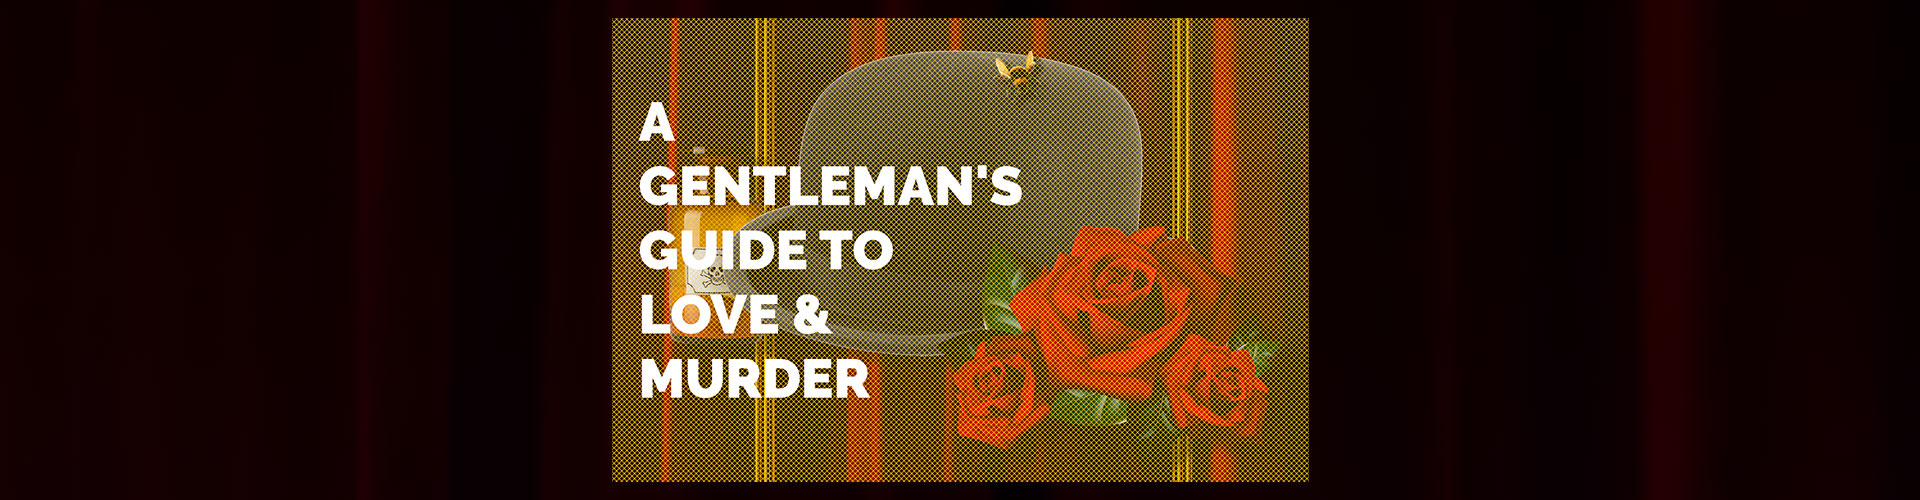 A Gentleman's Guide to Love and Murder - CANCELLED